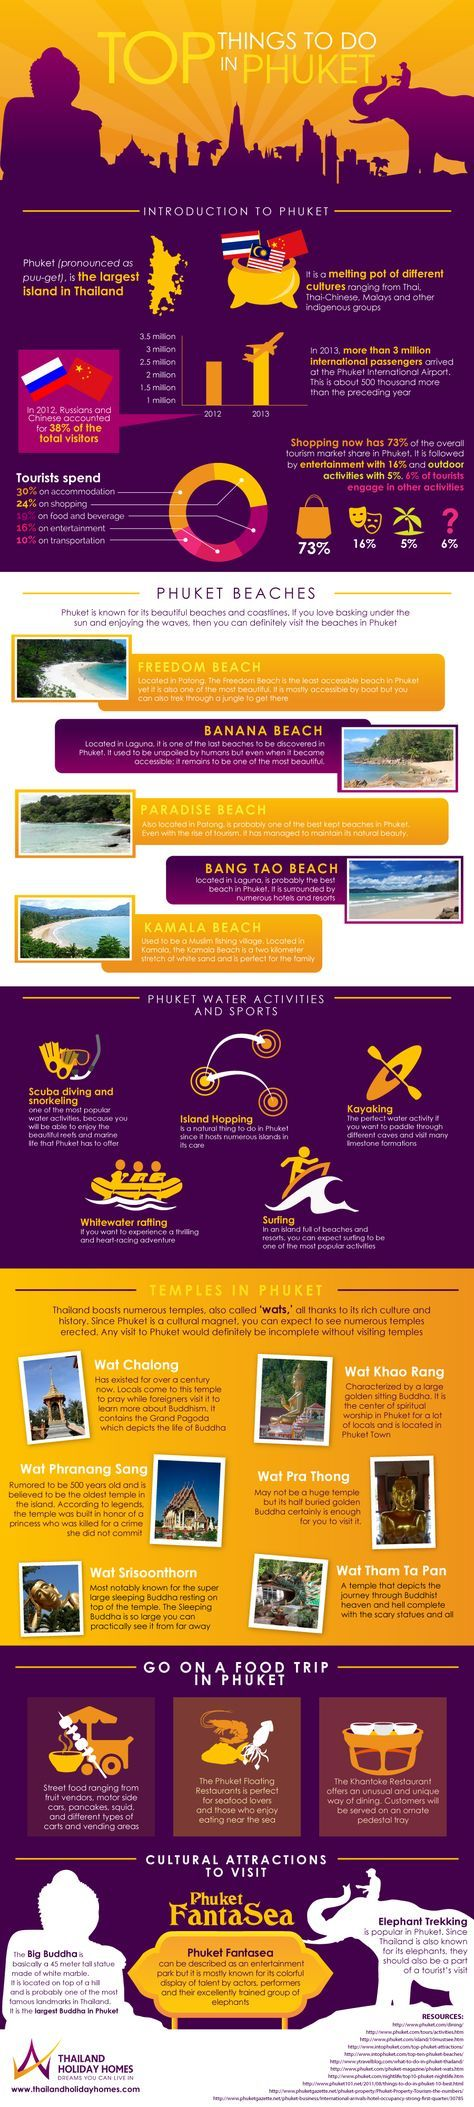 7 Things To Know Before You Travel To Phuket - Phuket is known as one of the popular tourist spot in Thailand. It's famous for their cheap accommodation, offshore islands, clear water beaches, and many more! But with lots of tourists, the…